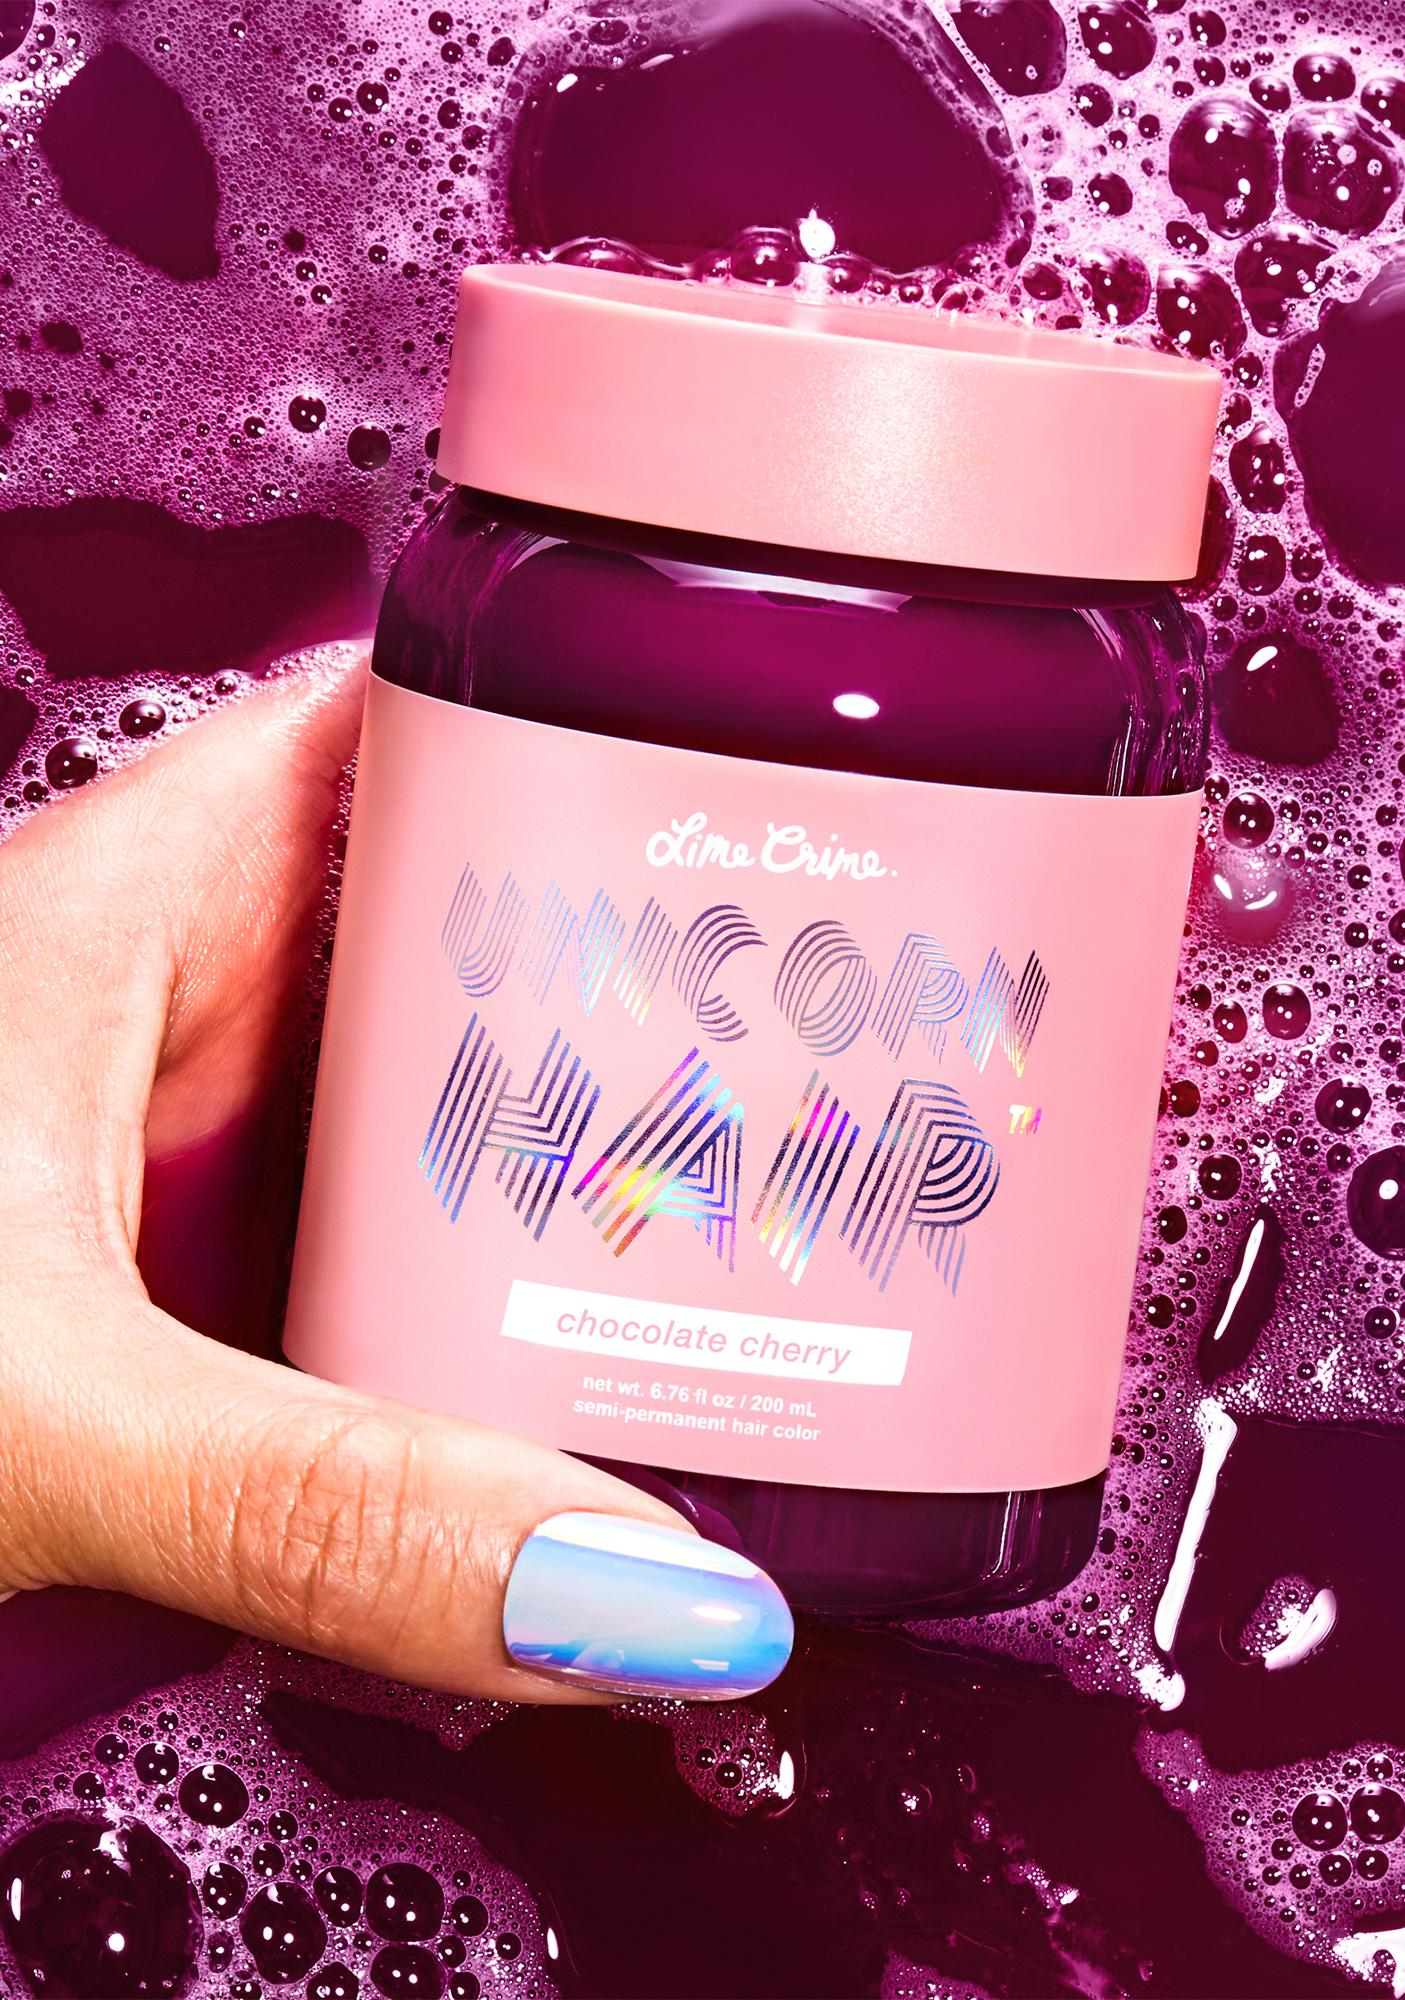 Lime Crime Chocolate Cherry Unicorn Hair Dye